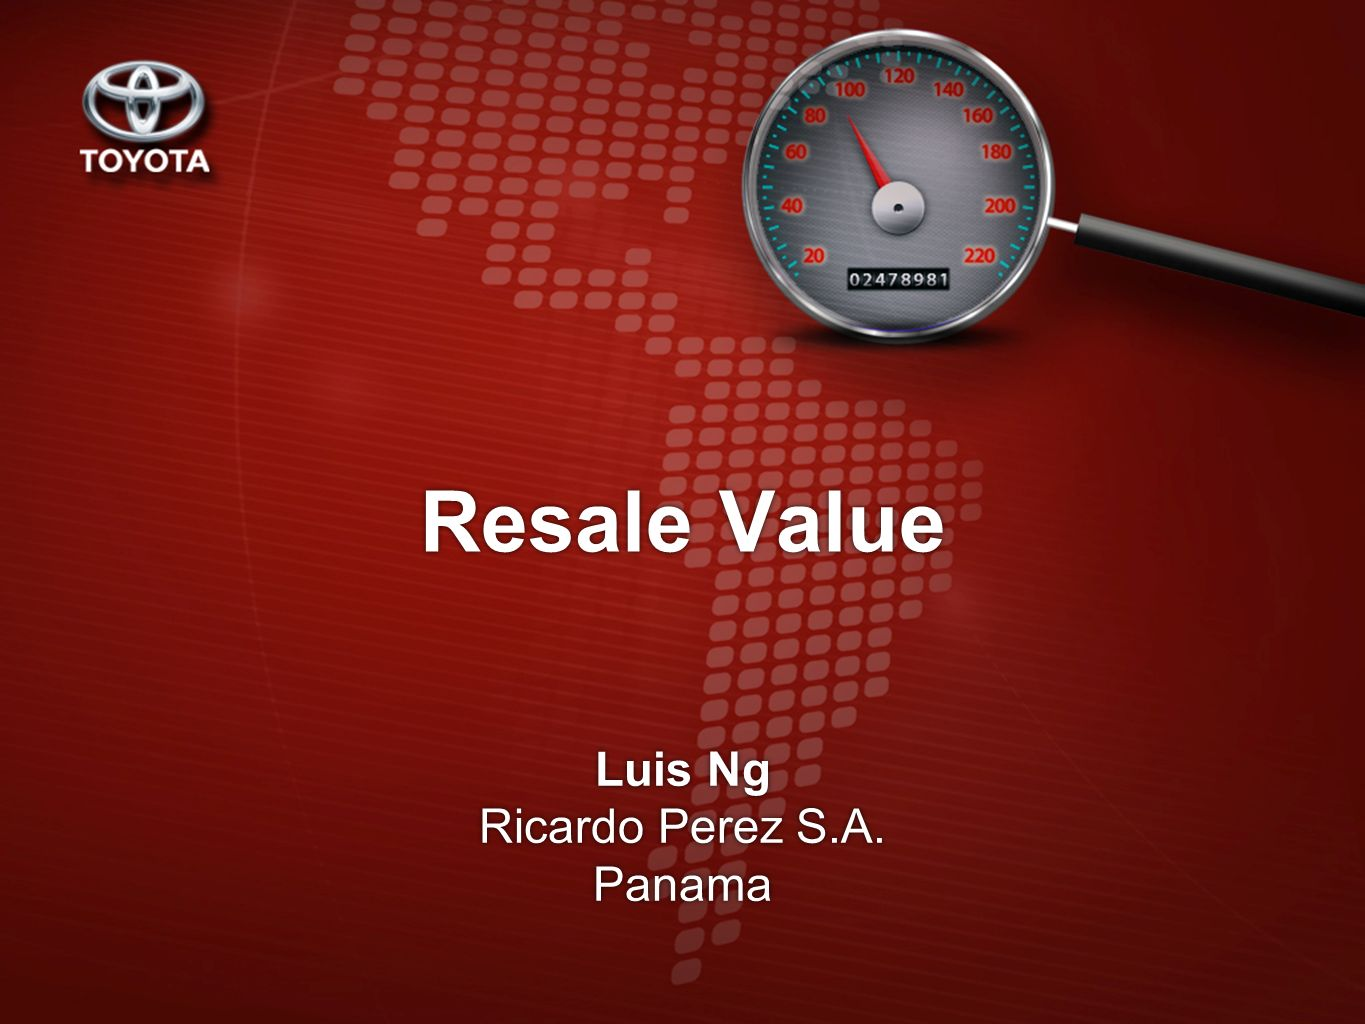 Resale Value Luis Ng Ricardo Perez S.A. Panama